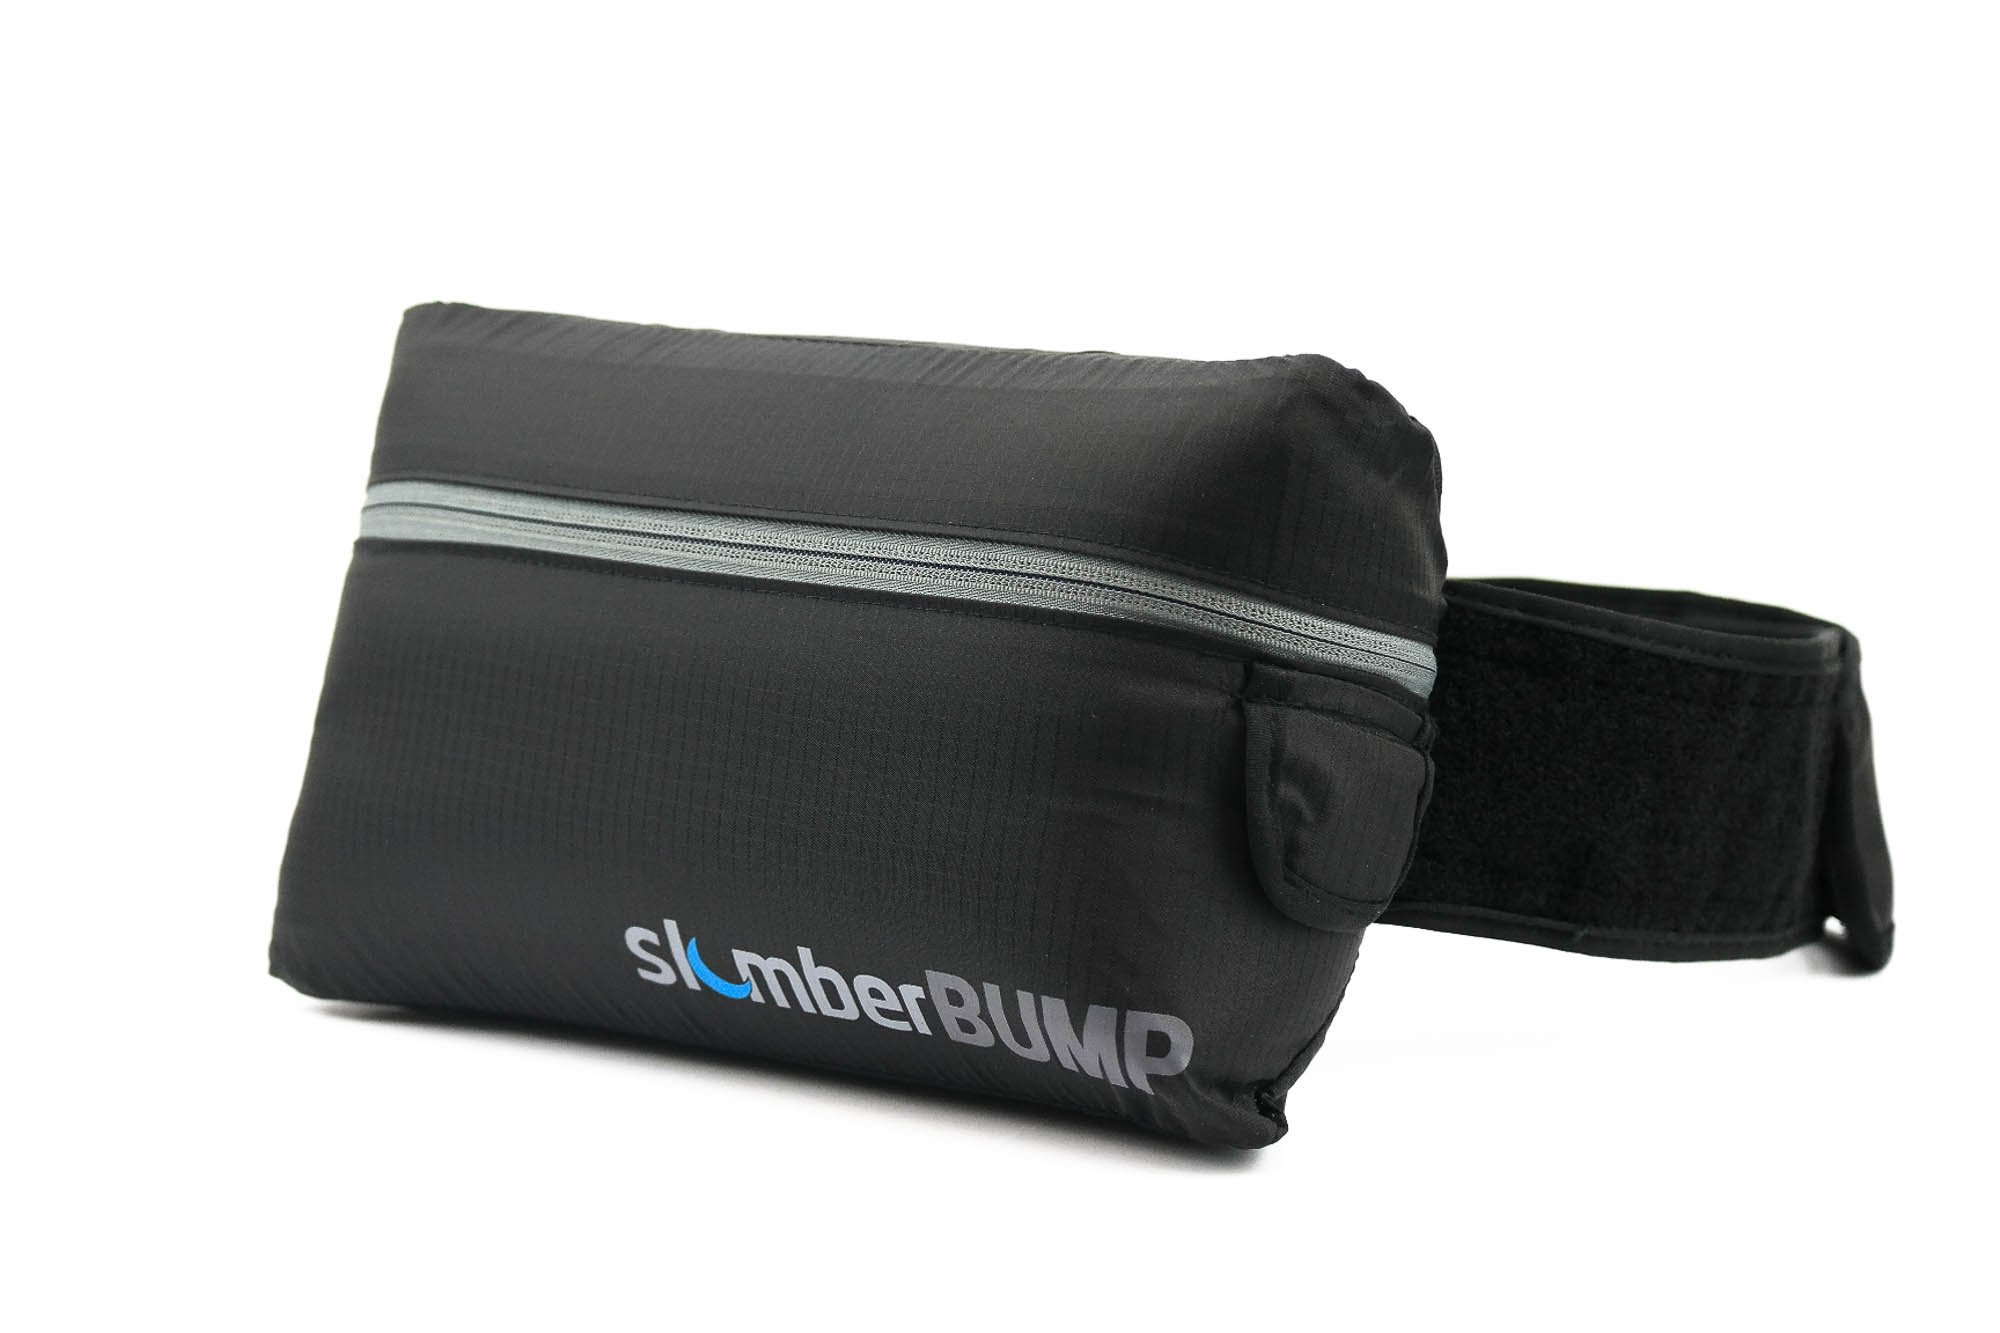 slumberBUMP Positional Sleep Belt for Snoring and Sleep-Disordered Breathing, Black/Gray (One Size Fits All)